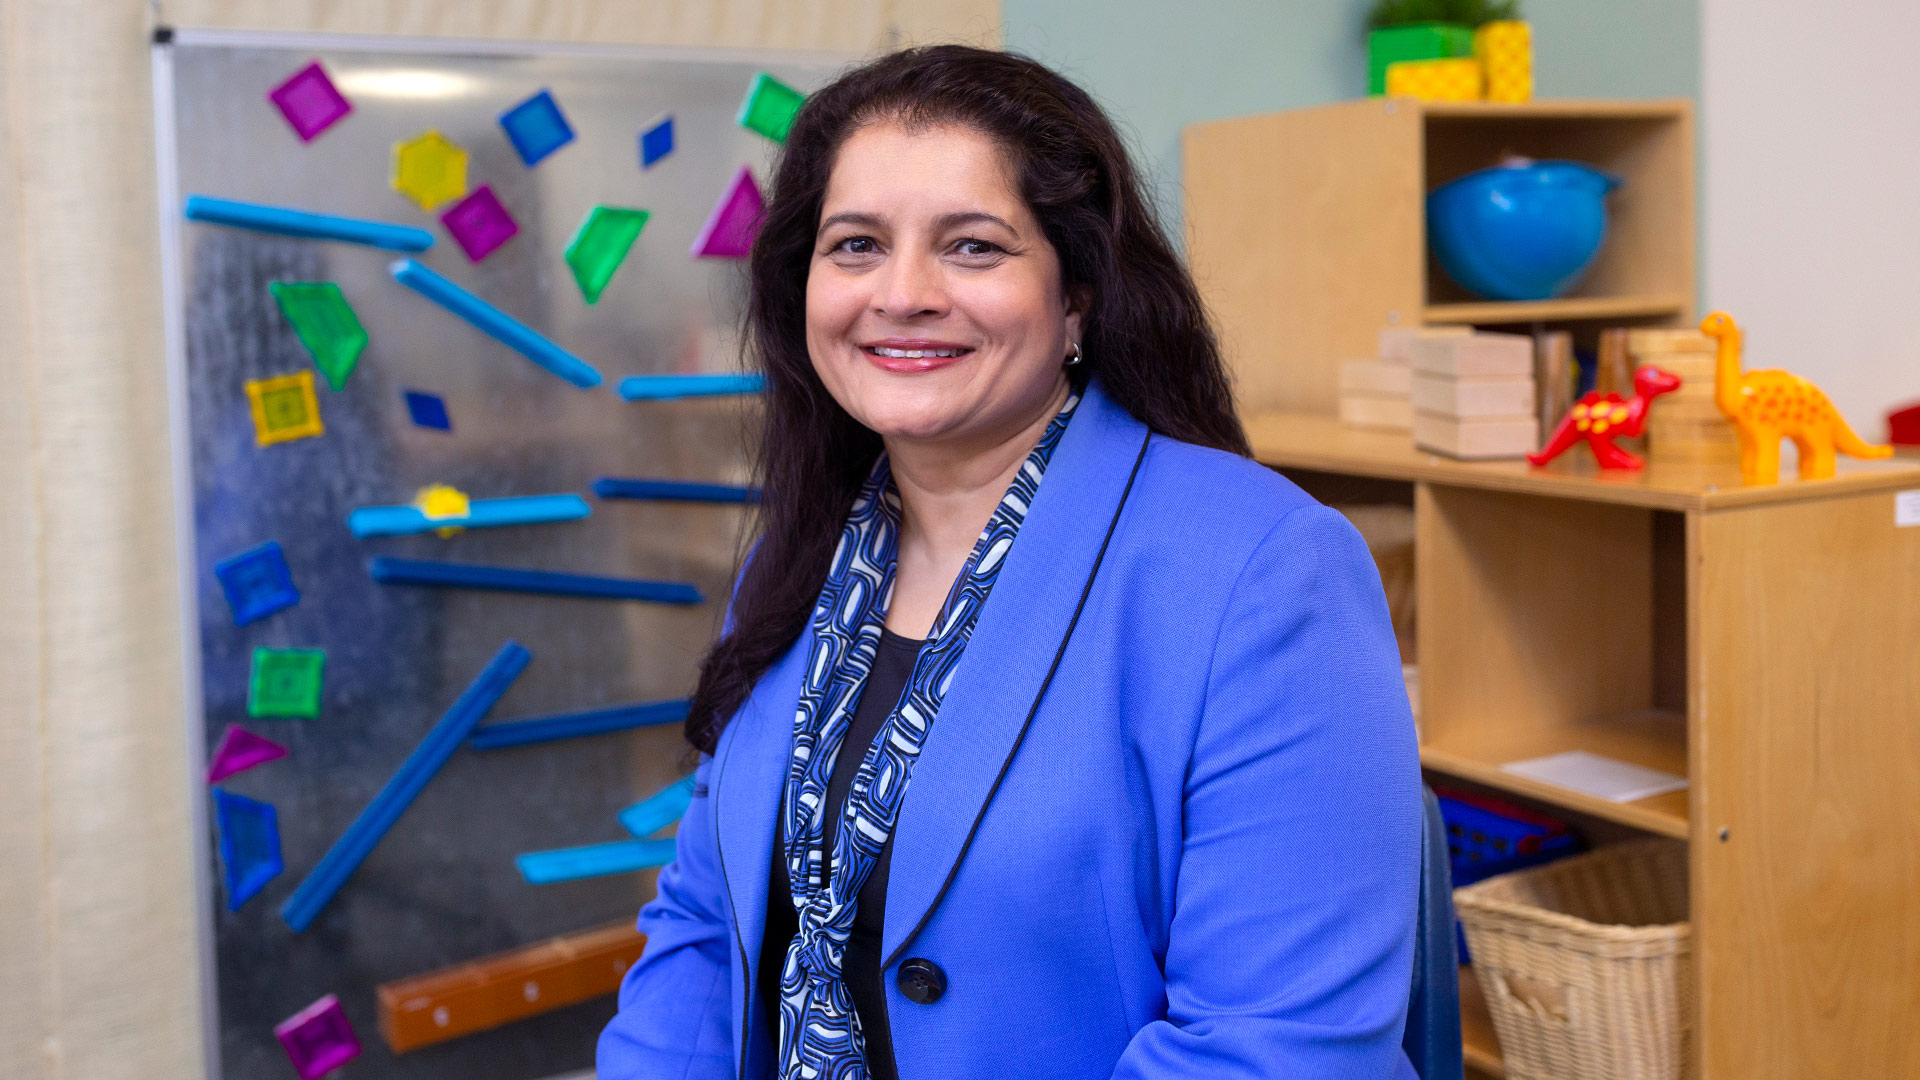 UHCL prof wins coveted Teacher Educator of the Year award